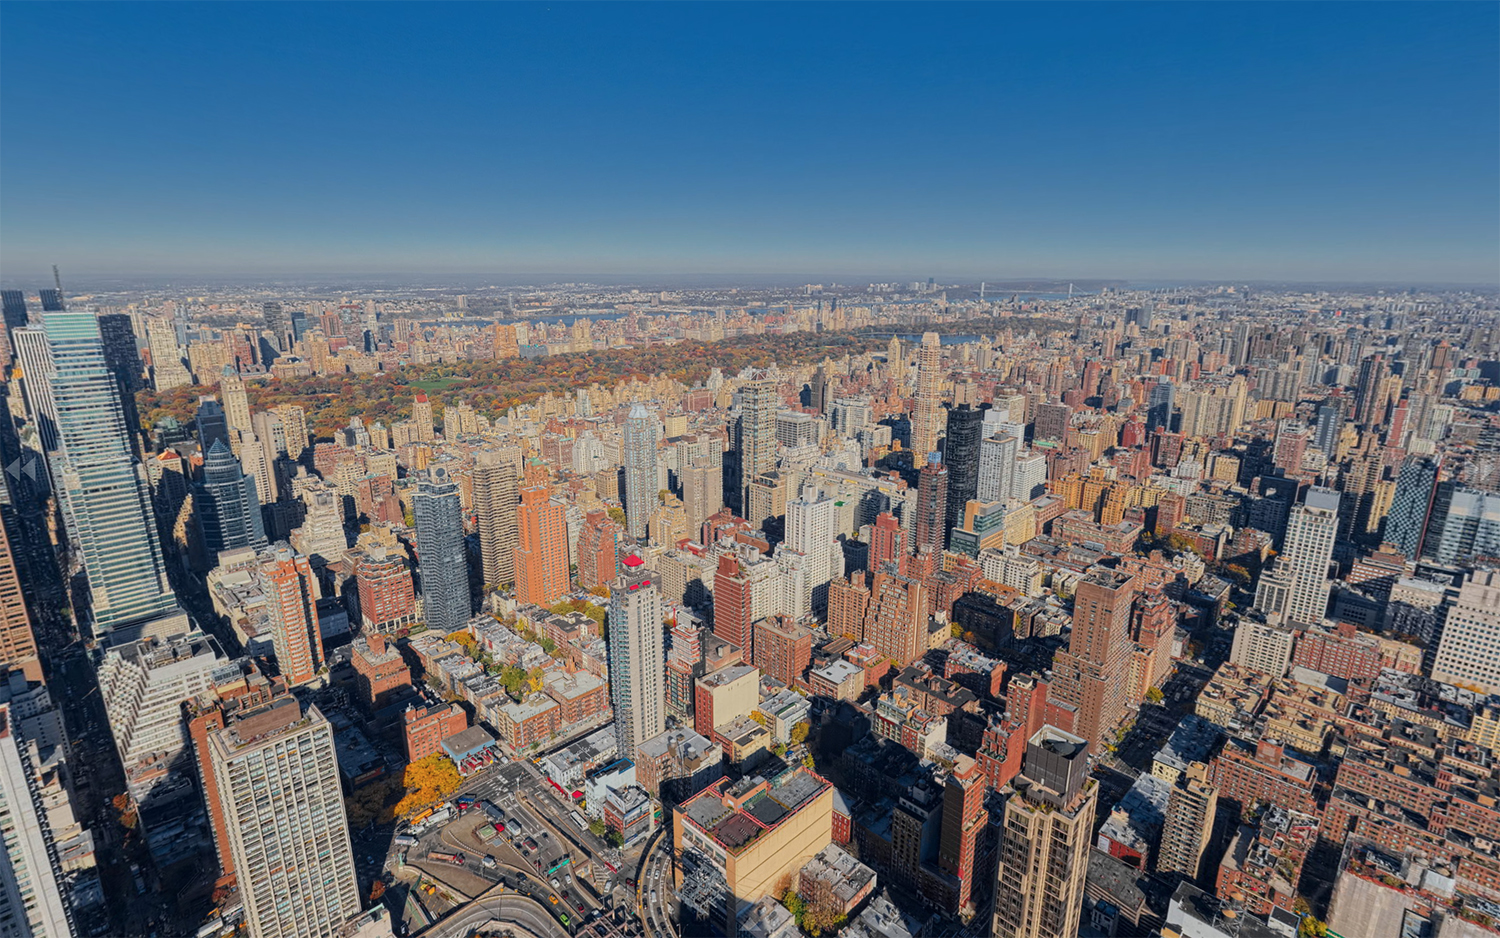 View from 428-432 East 58th Street, 900 feet up. Via Bauhouse Group.